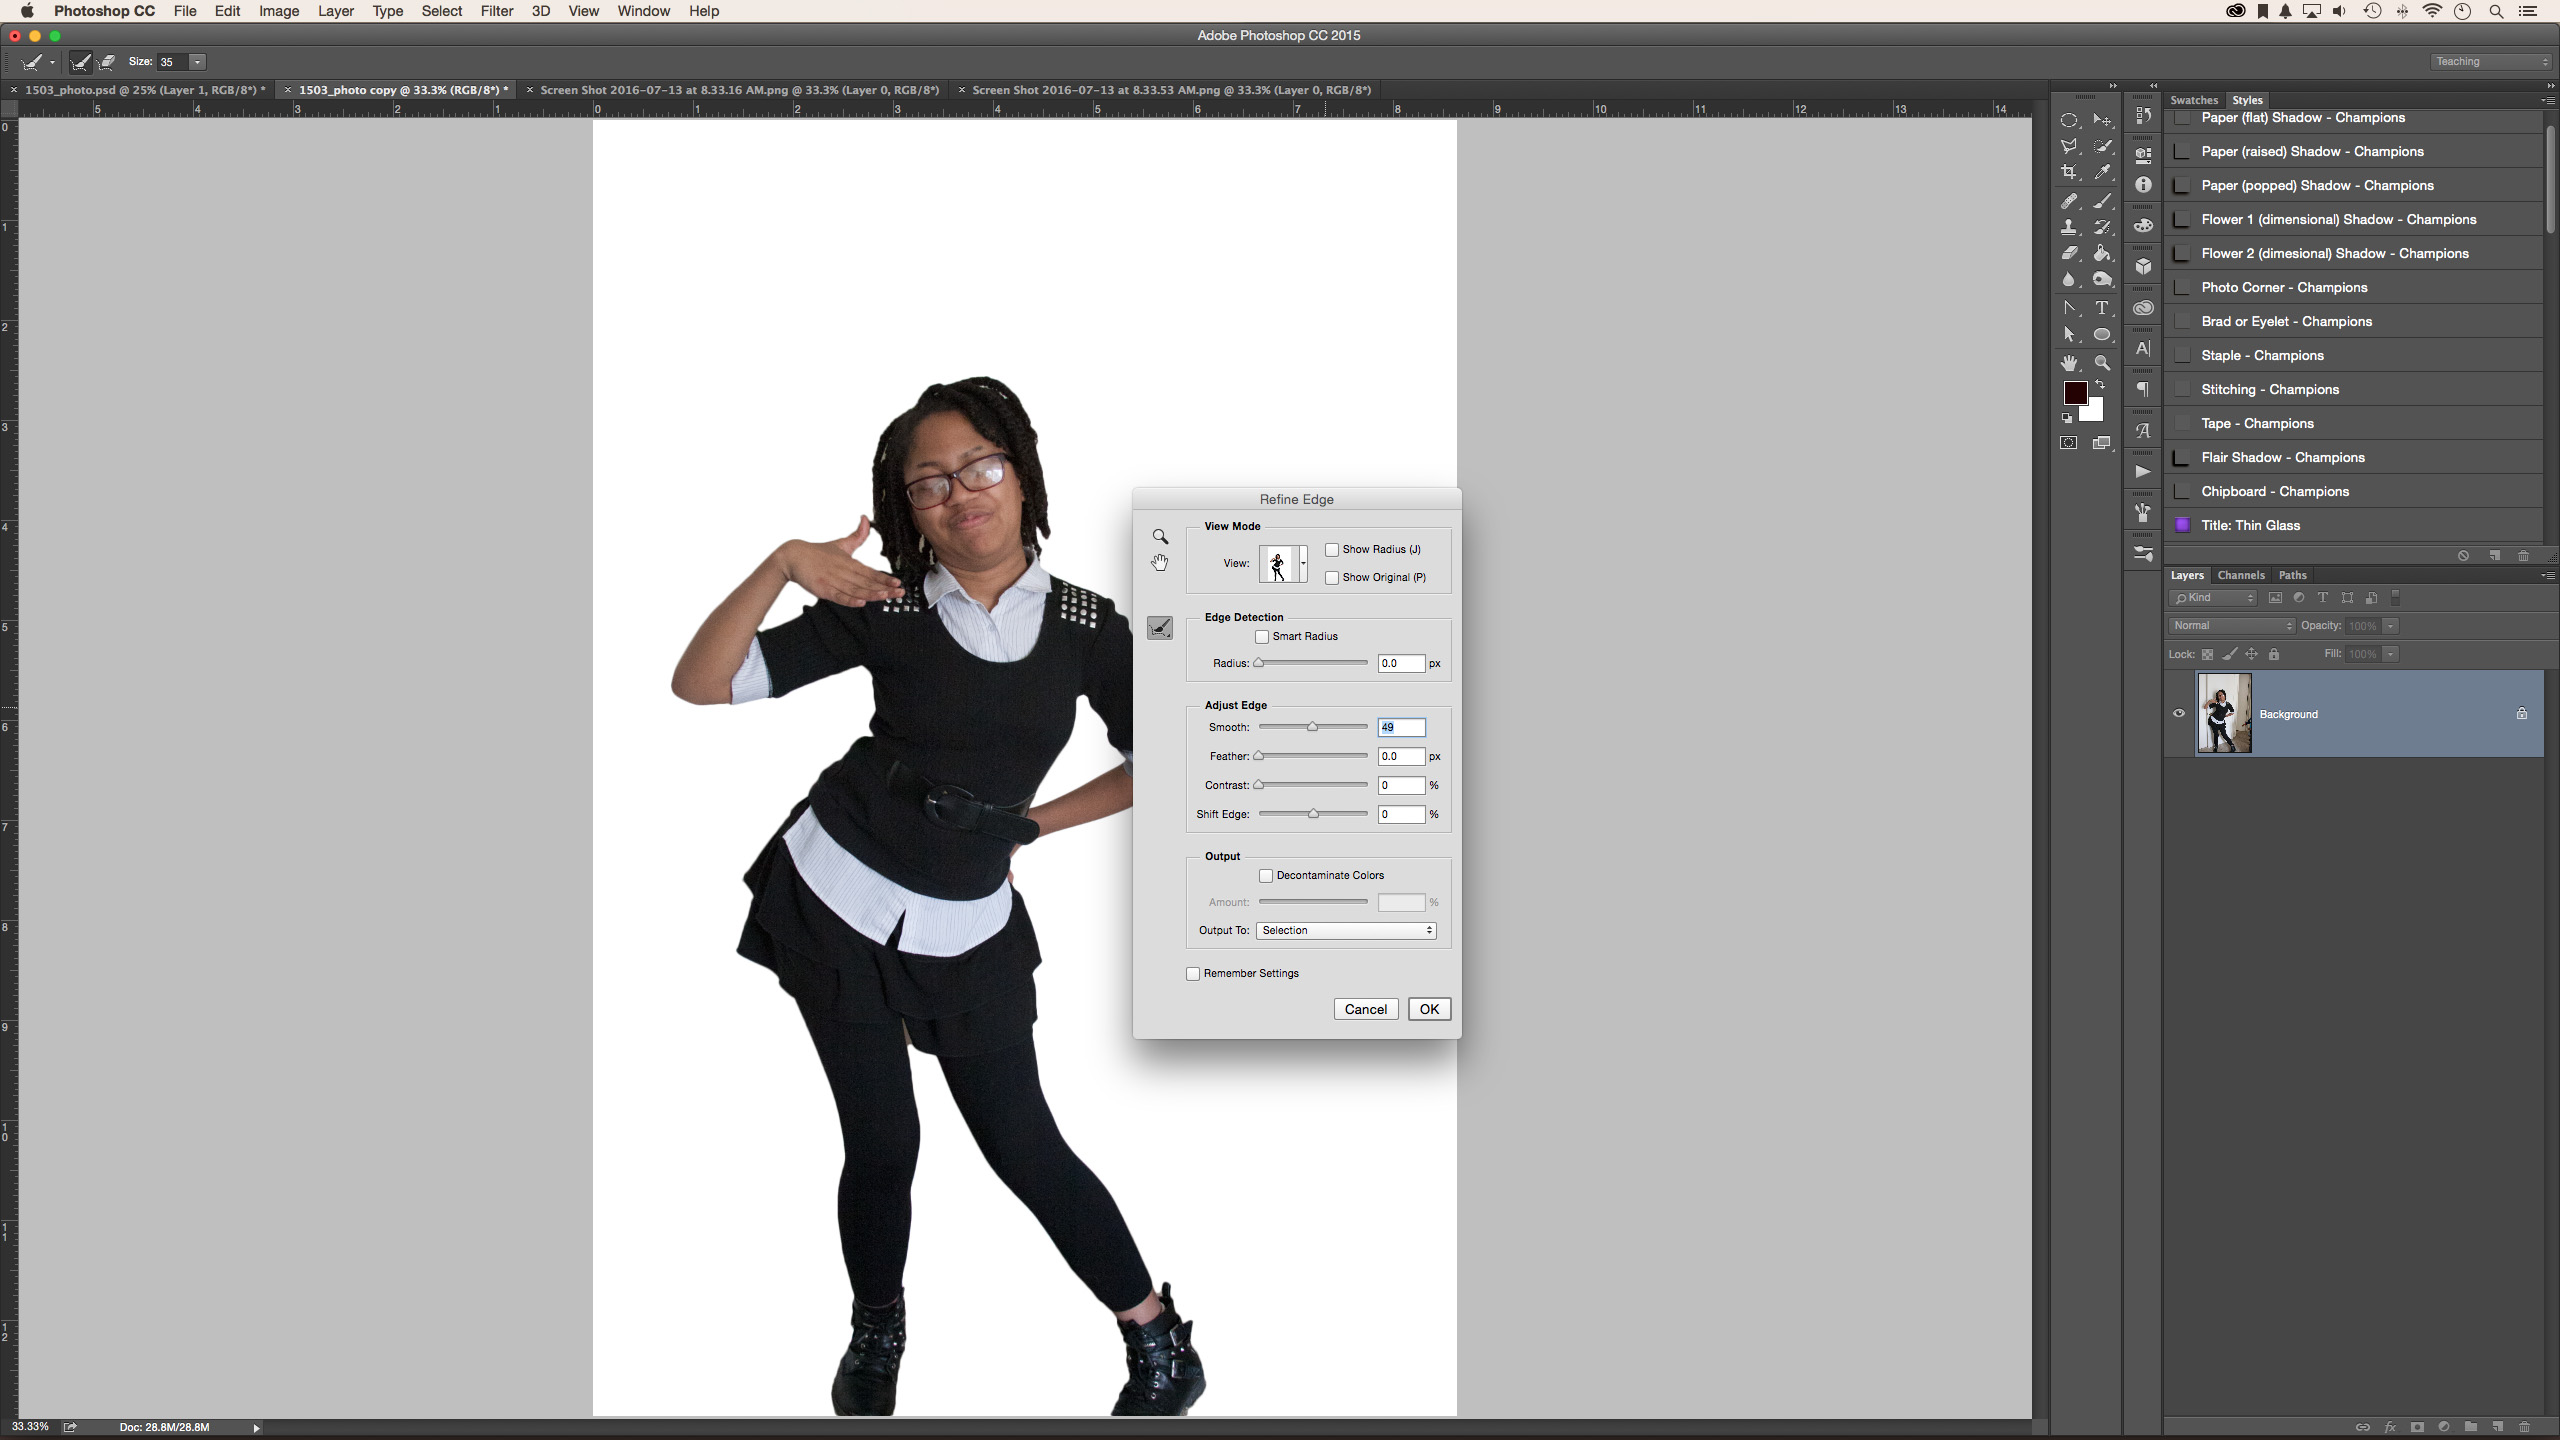 Learn how to remove the background of an image in Photoshop with the complete Photoshop tutorial on the CreativeLive blog.